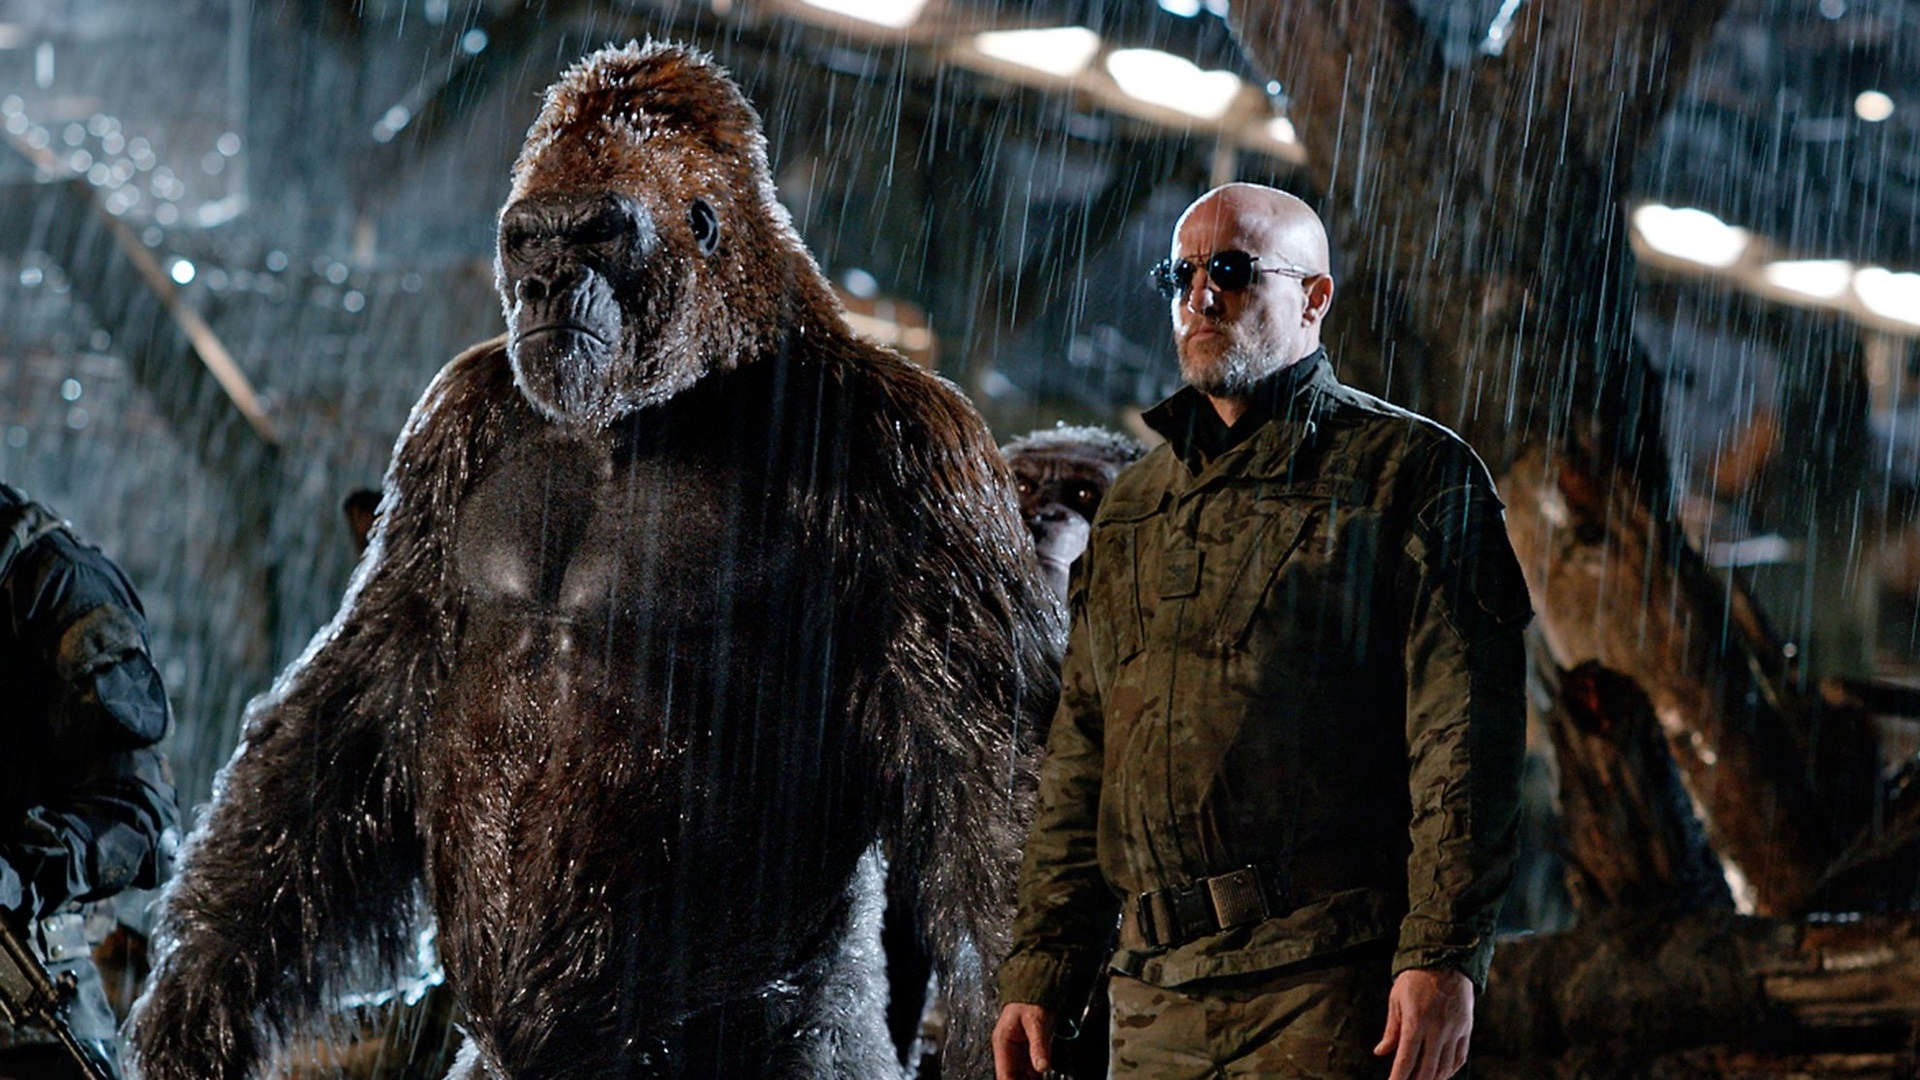 director-of-war-of-the-planet-of-the-apes-discusses-films-influences1